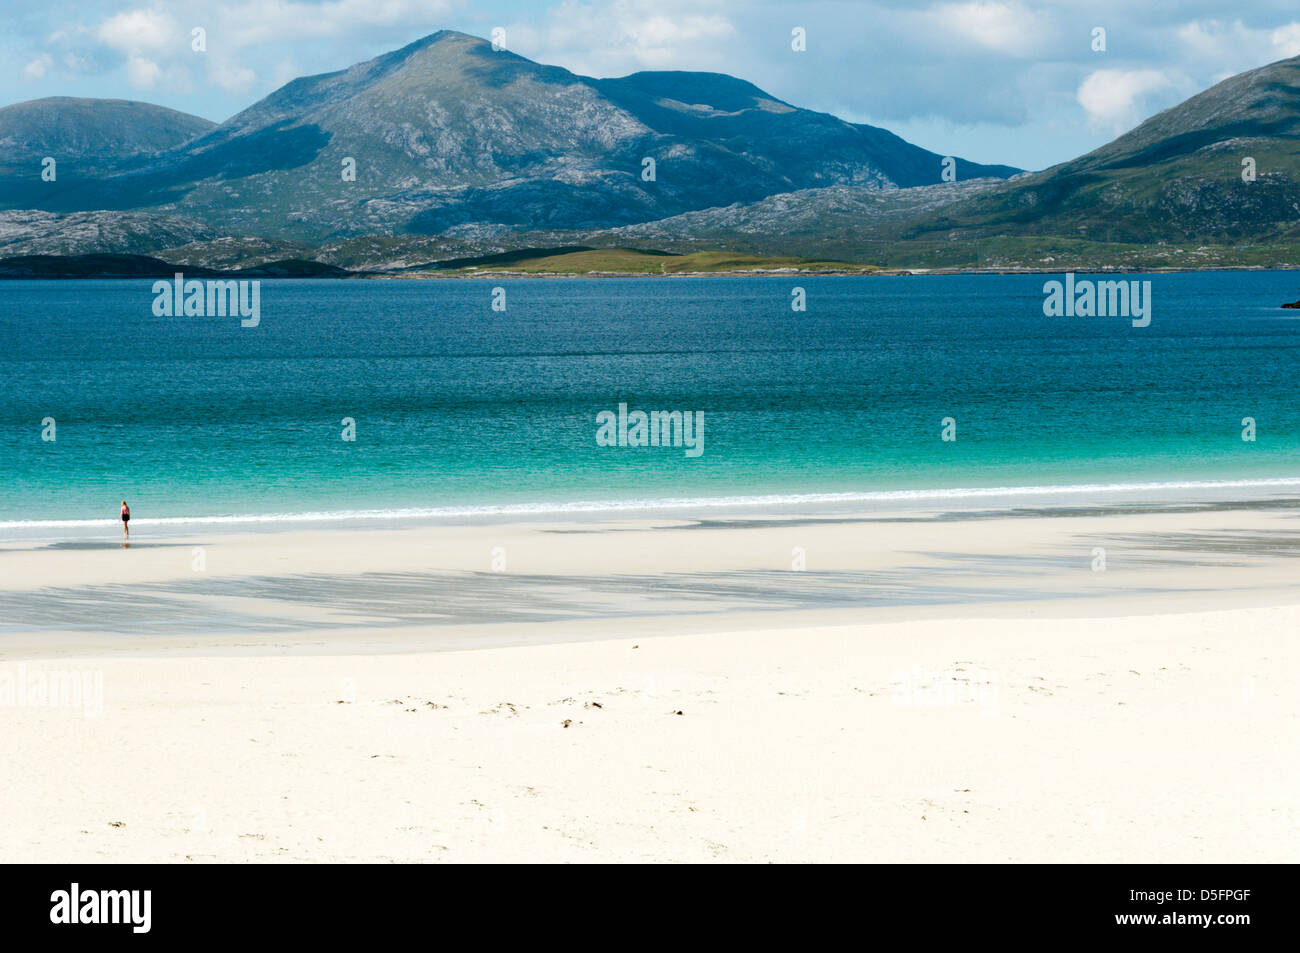 North Harris seen from South Harris across Luskentyre Bay and Traigh Rosamol. - Stock Image